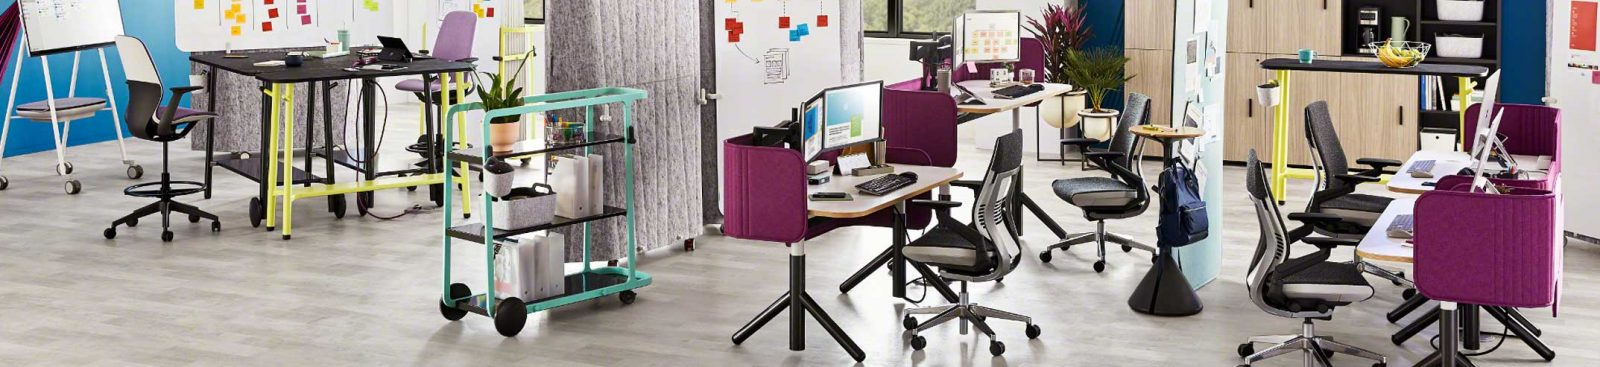 Portable furniture: the modern office is on the move image